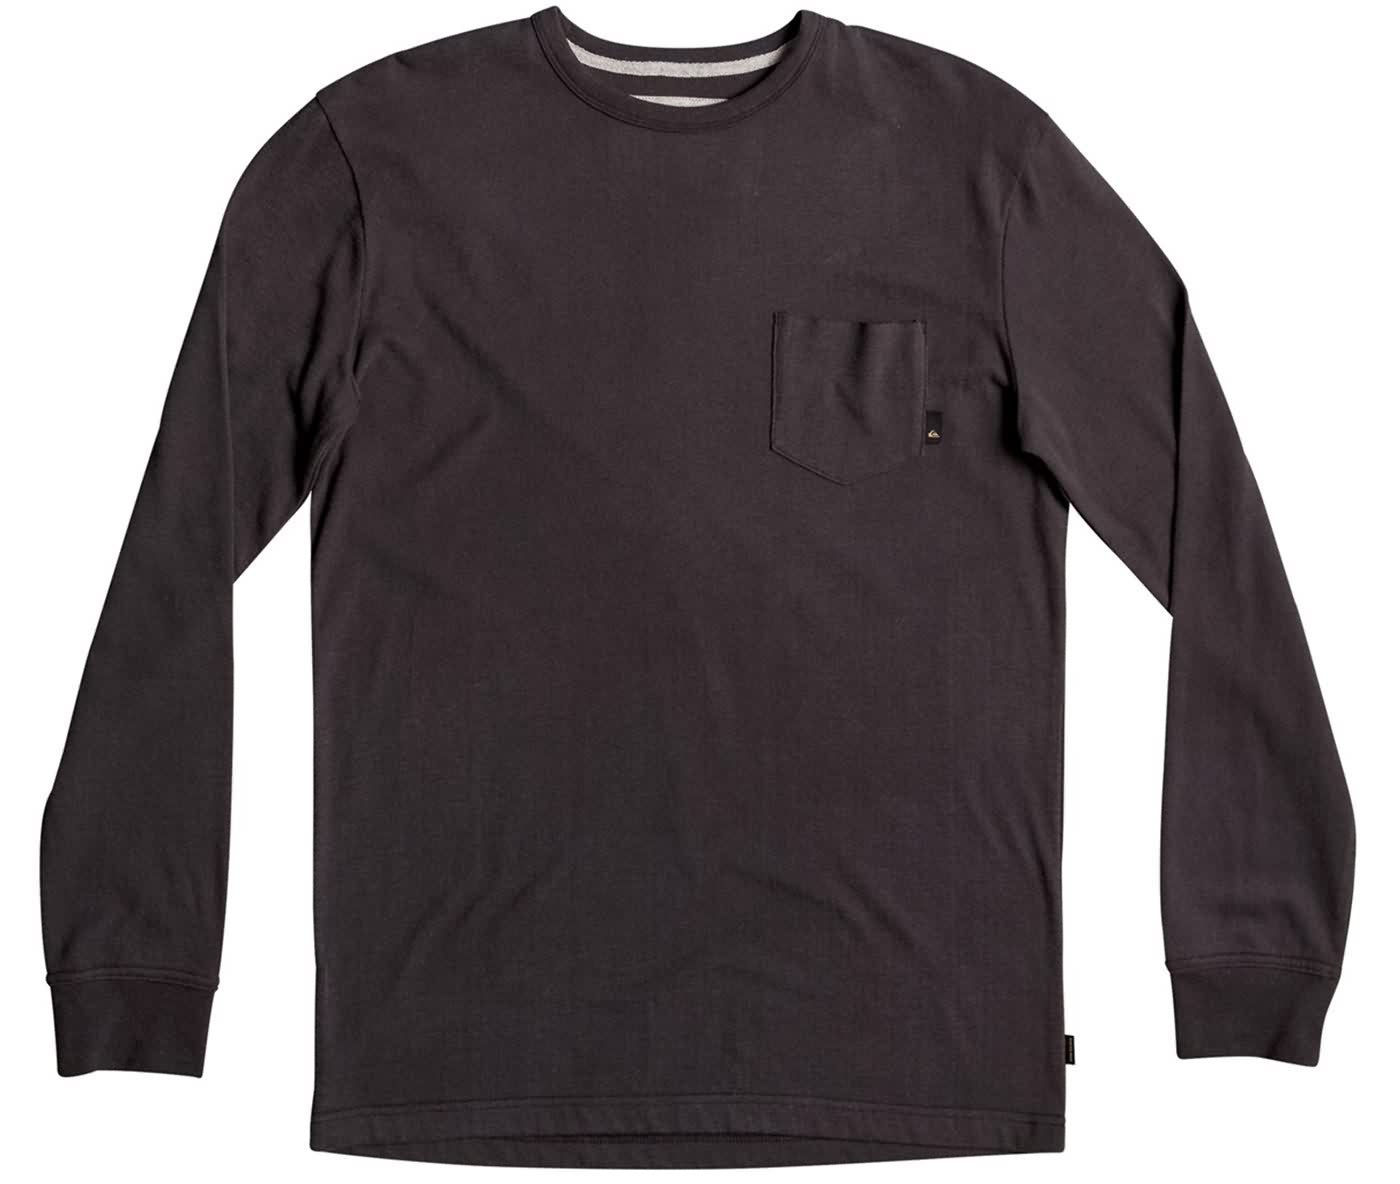 Quiksilver Surf Fall 2017 Mens Lifestyle Tee Shirts Preview